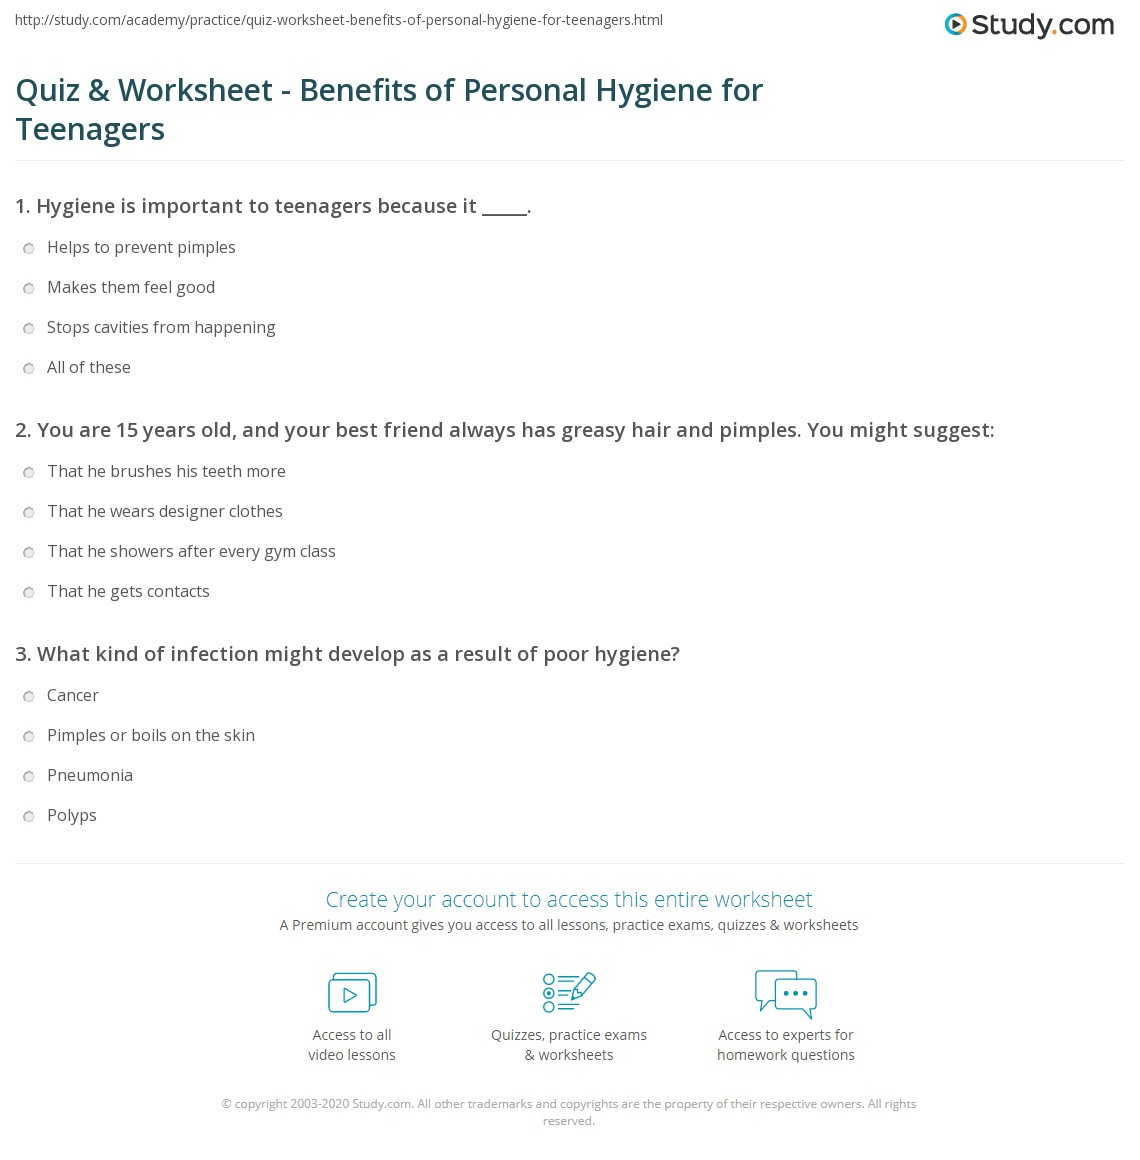 Quiz Worksheet Benefits Of Personal Hygiene For Teenagers